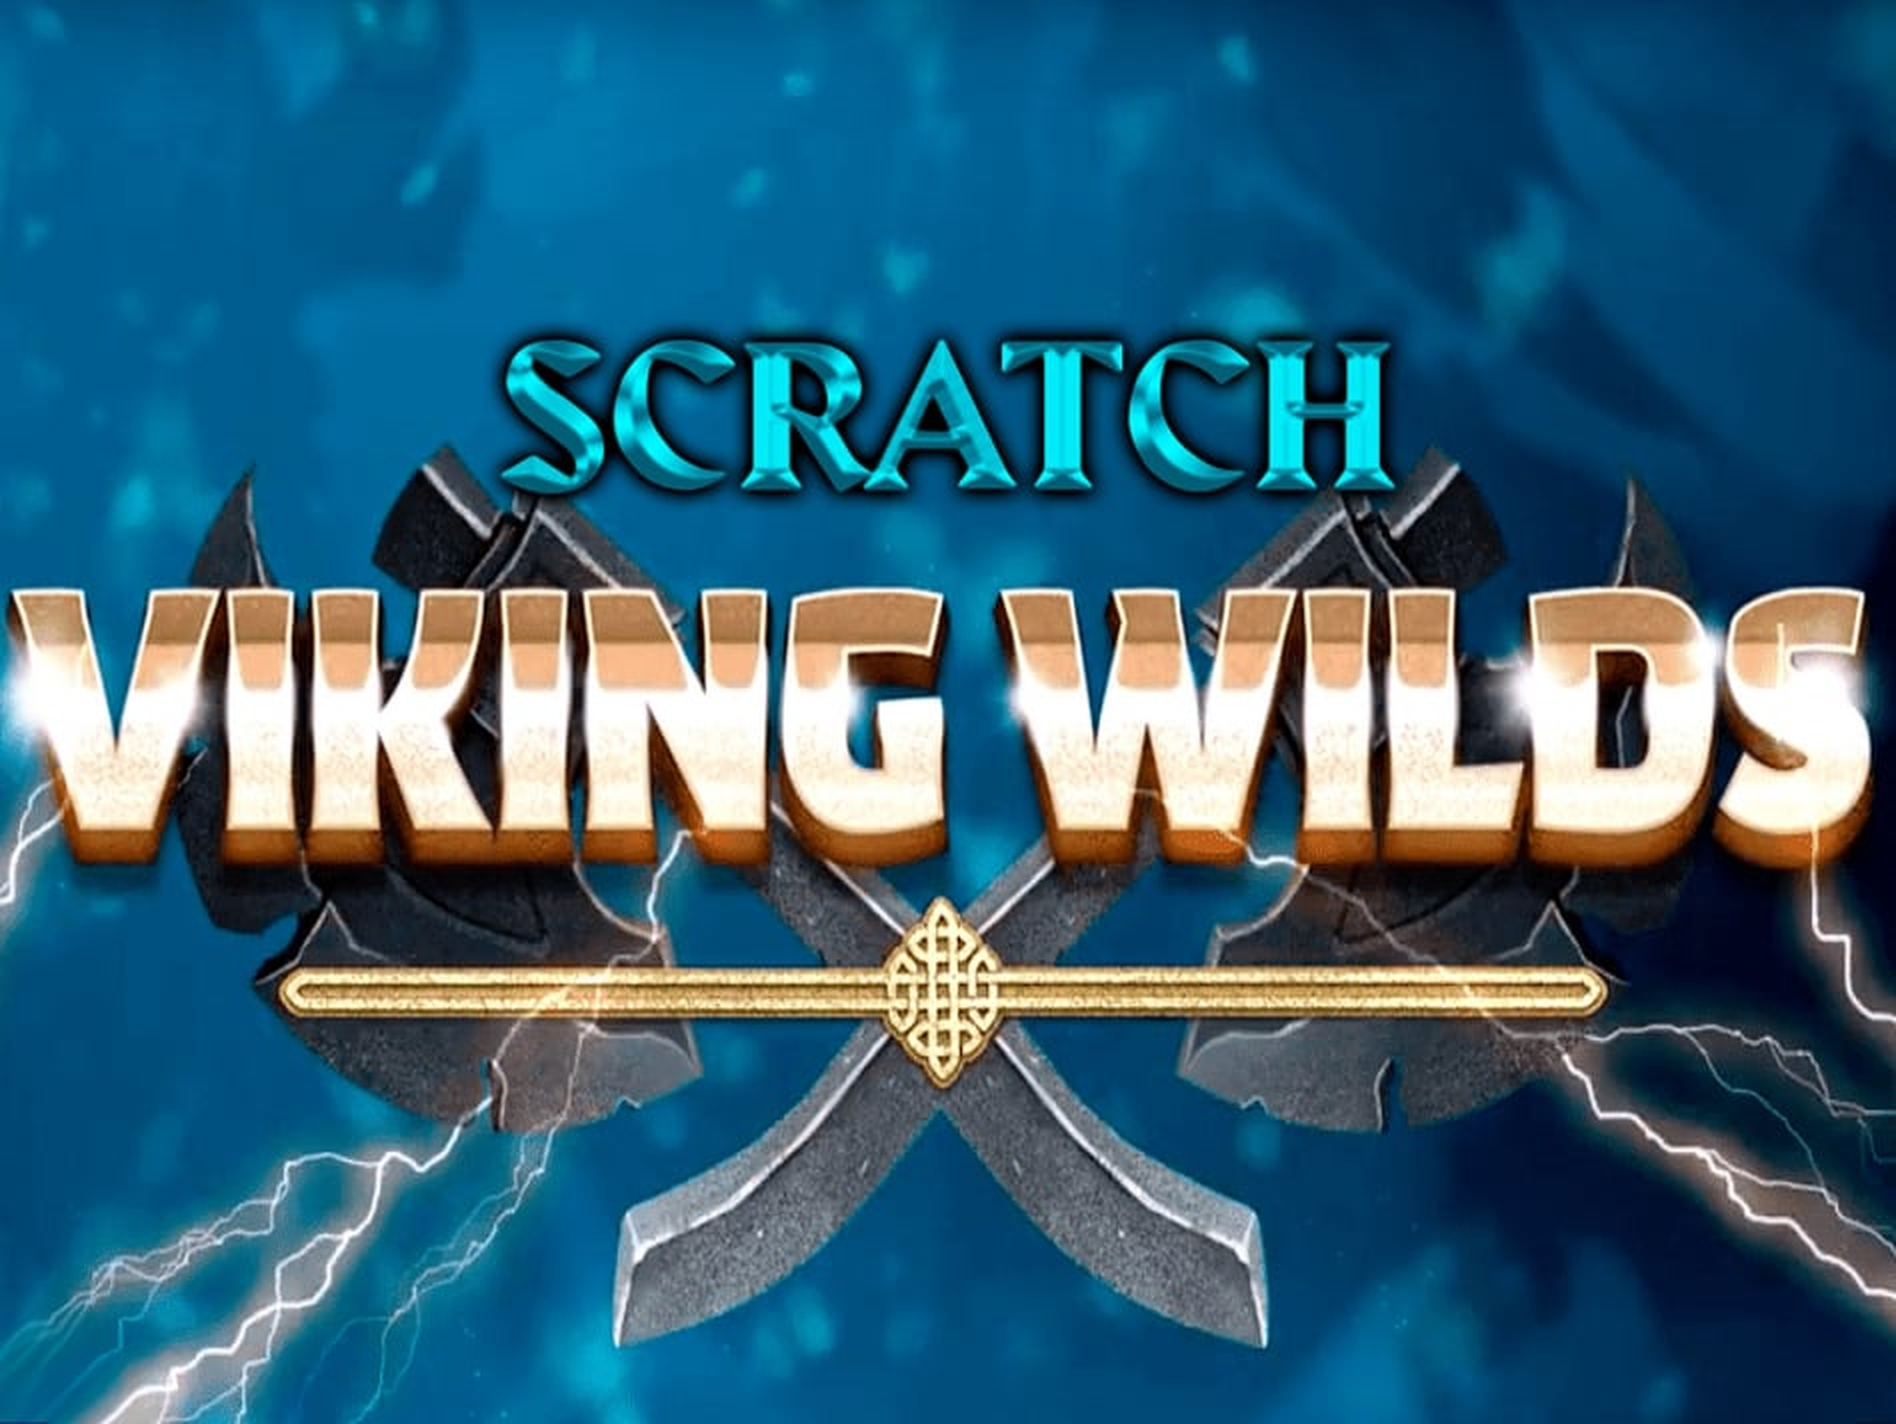 Se Viking Wilds Scratch Online Slot Demo Game, IronDog